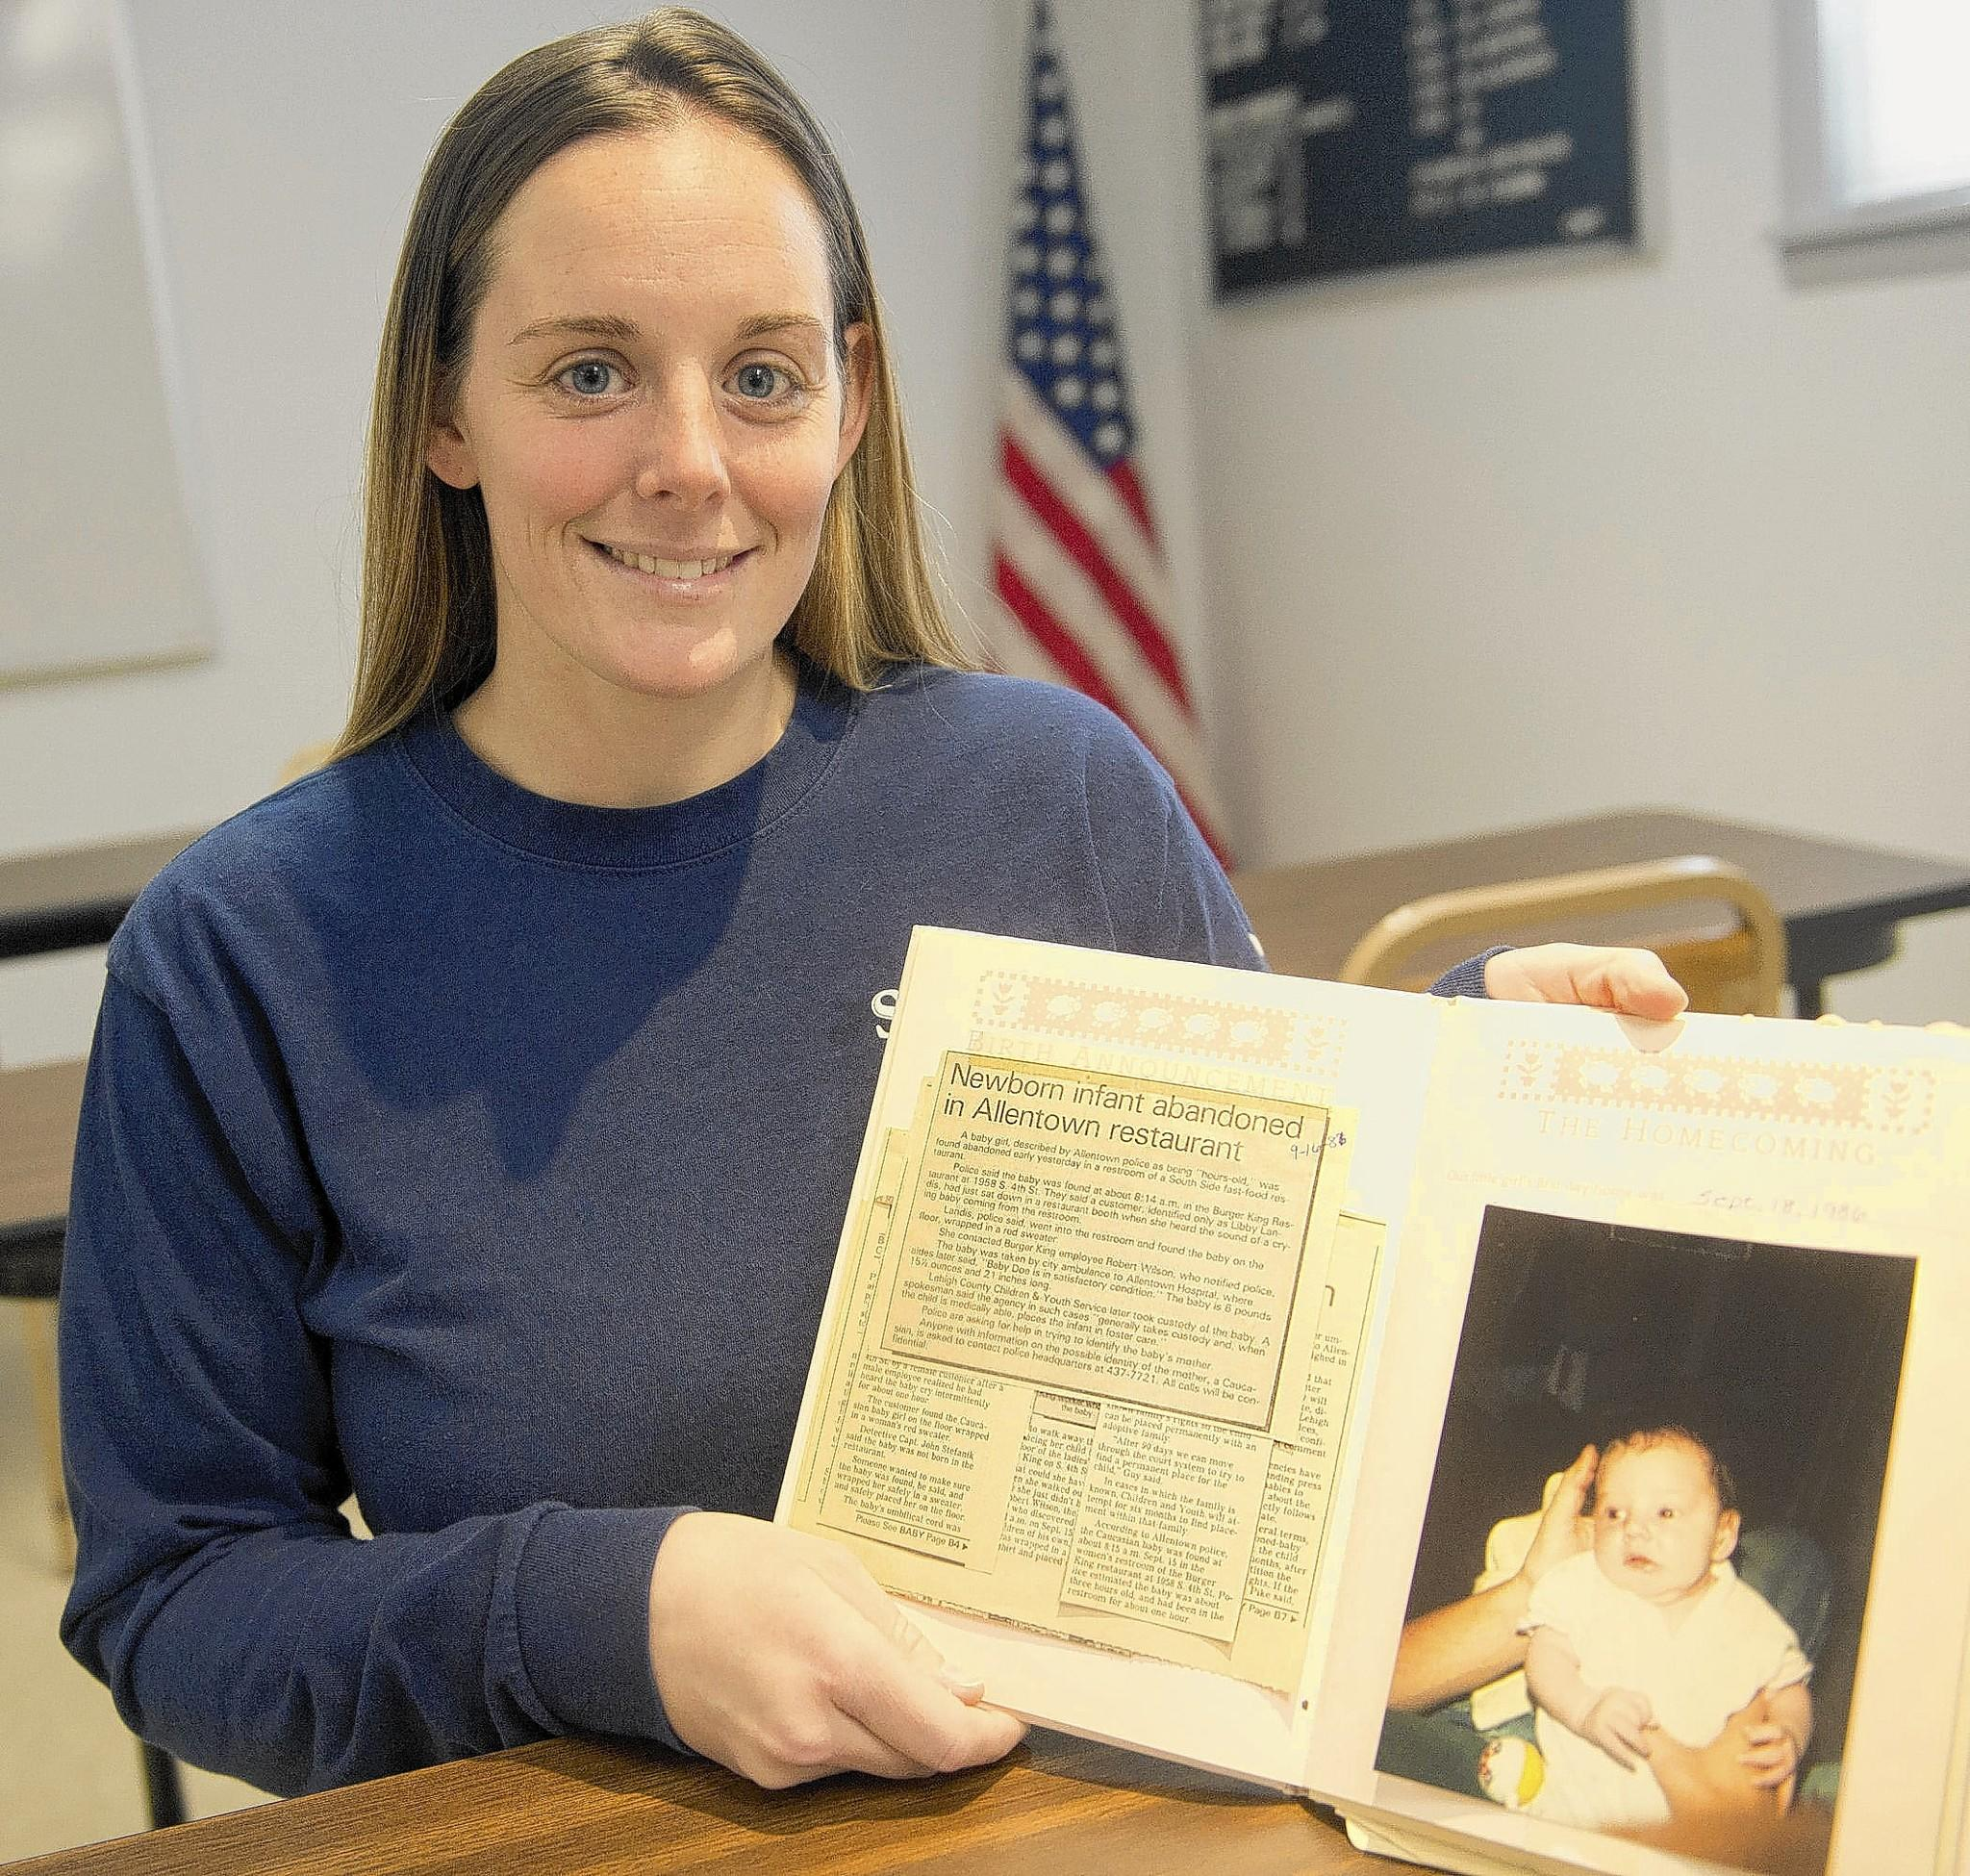 Katheryn Deprill's parents gave her a memory book full of keepsakes from her infancy -- including the police report about her abandonment at a Burger King by her birth mother. Deprill, 27, finally met her birth mother last week.